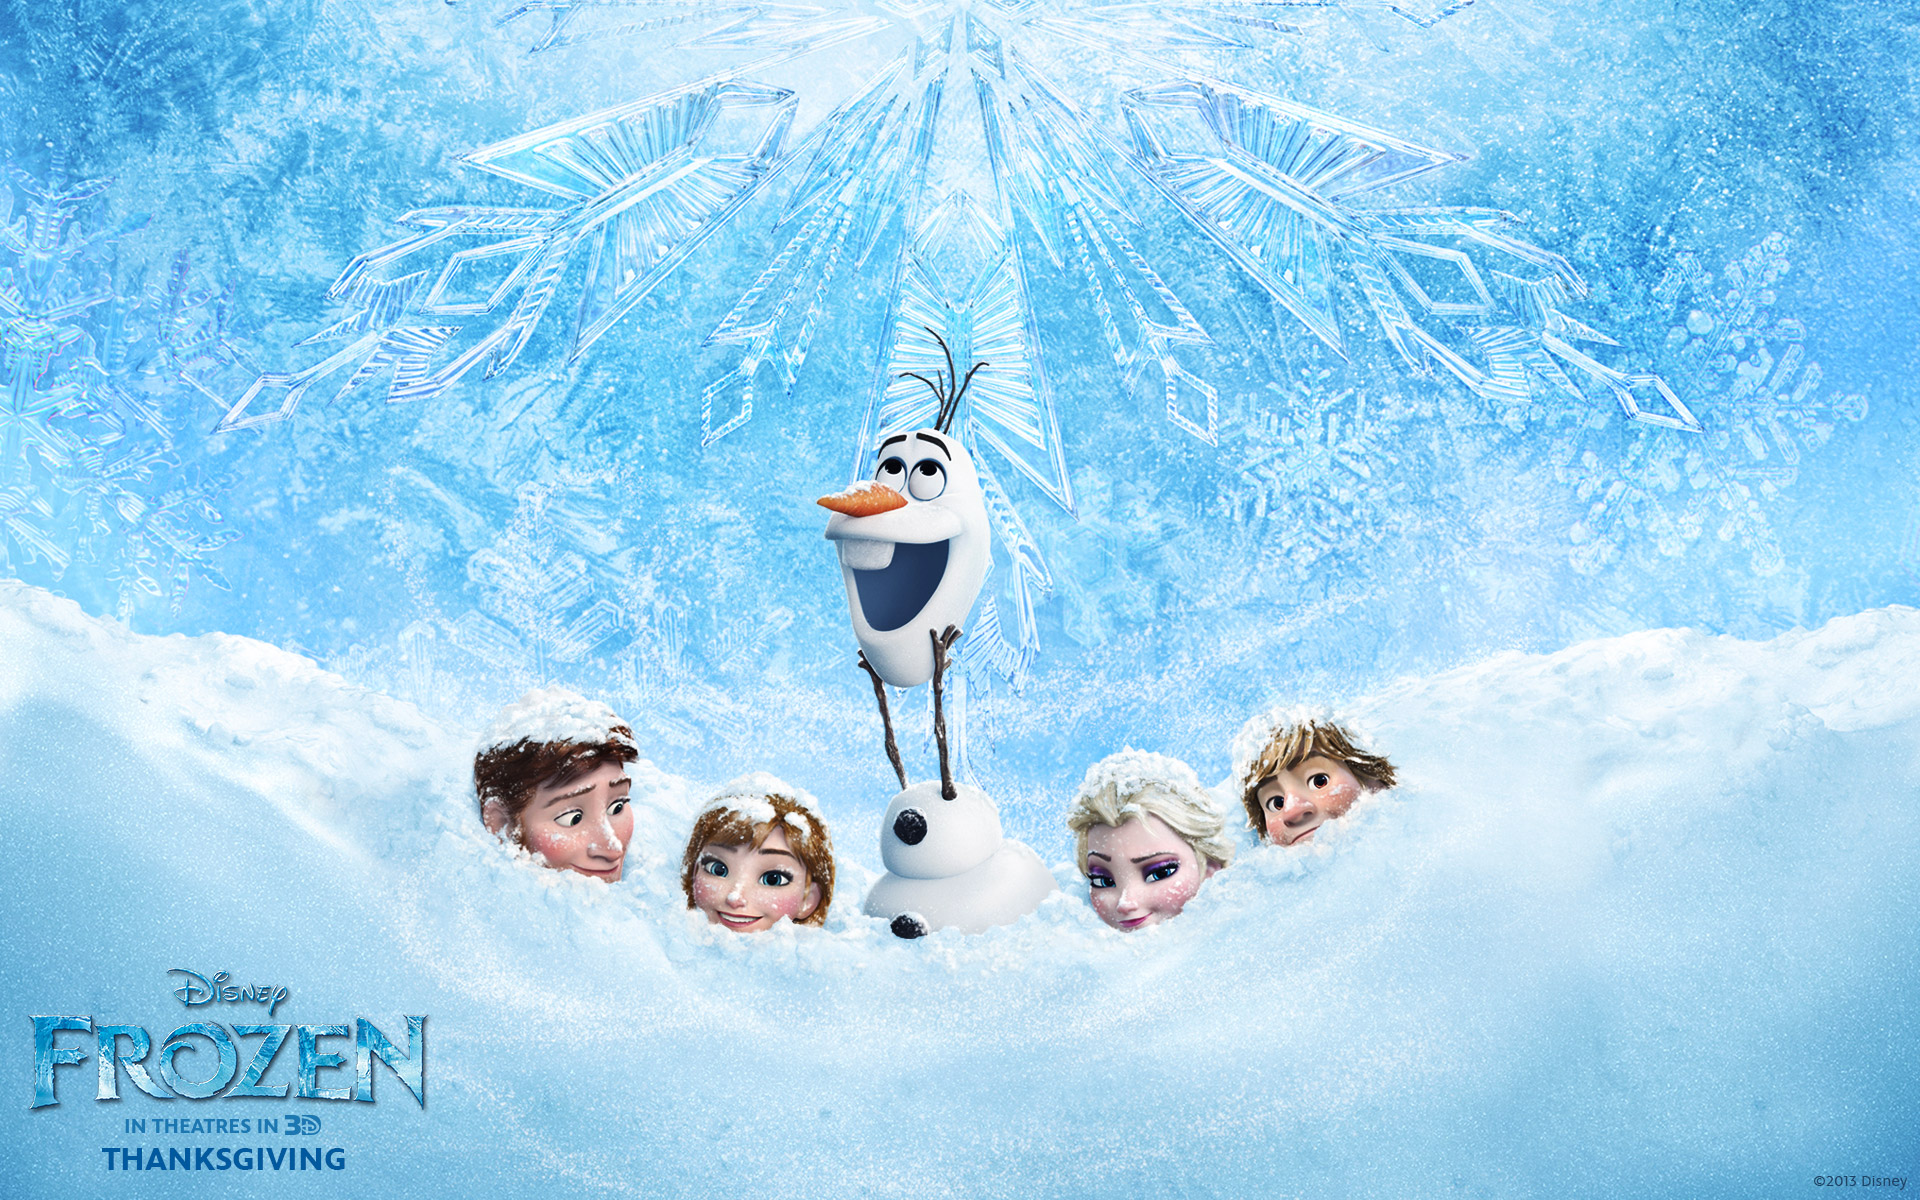 Olaf and Hans Disneys Frozen CG animated movie wallpaper image 1920x1200